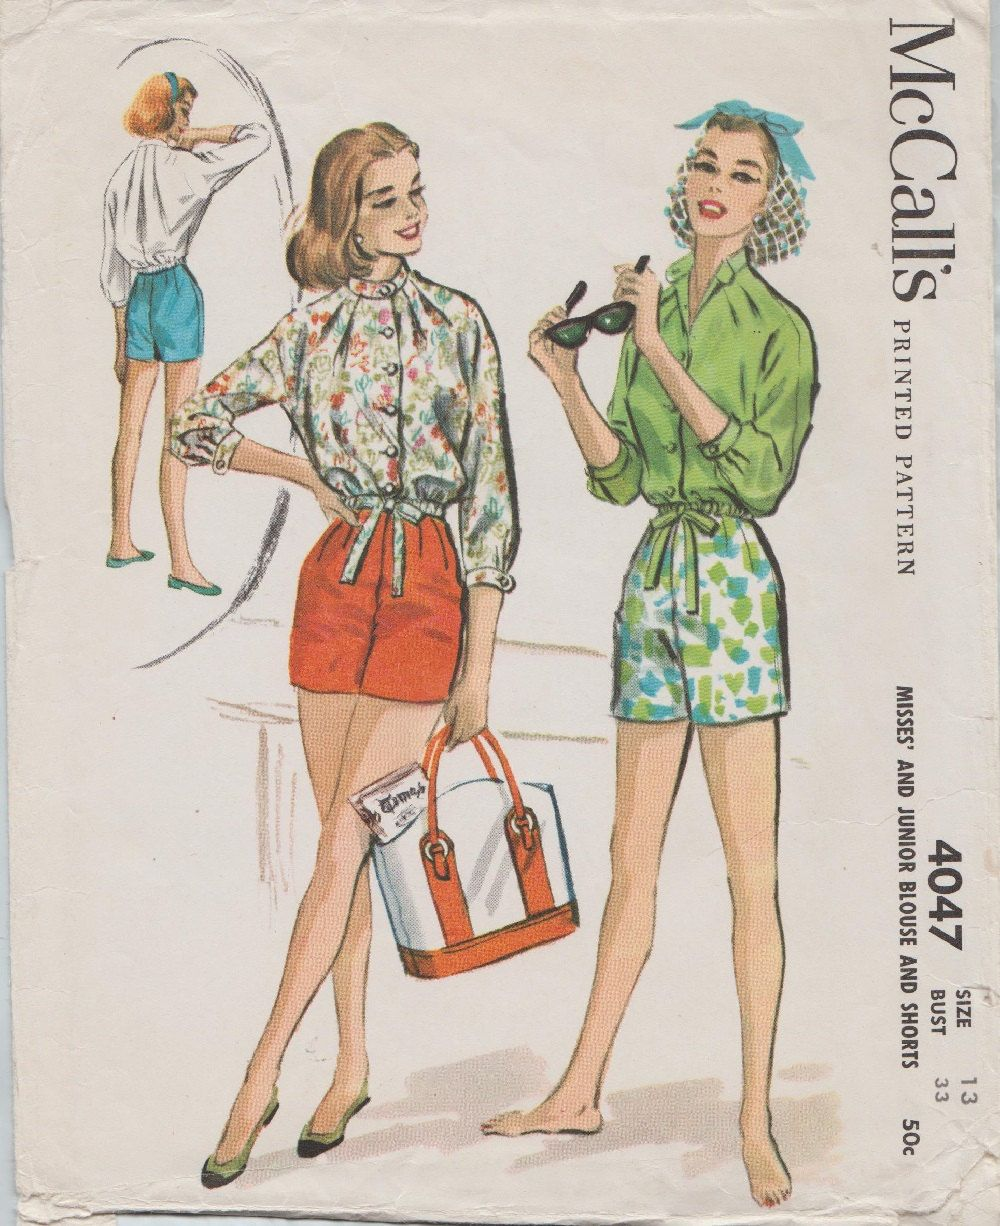 Vintage 50s Sewing Pattern / McCalls 4047 / Shorts Blouse Playsuit ...